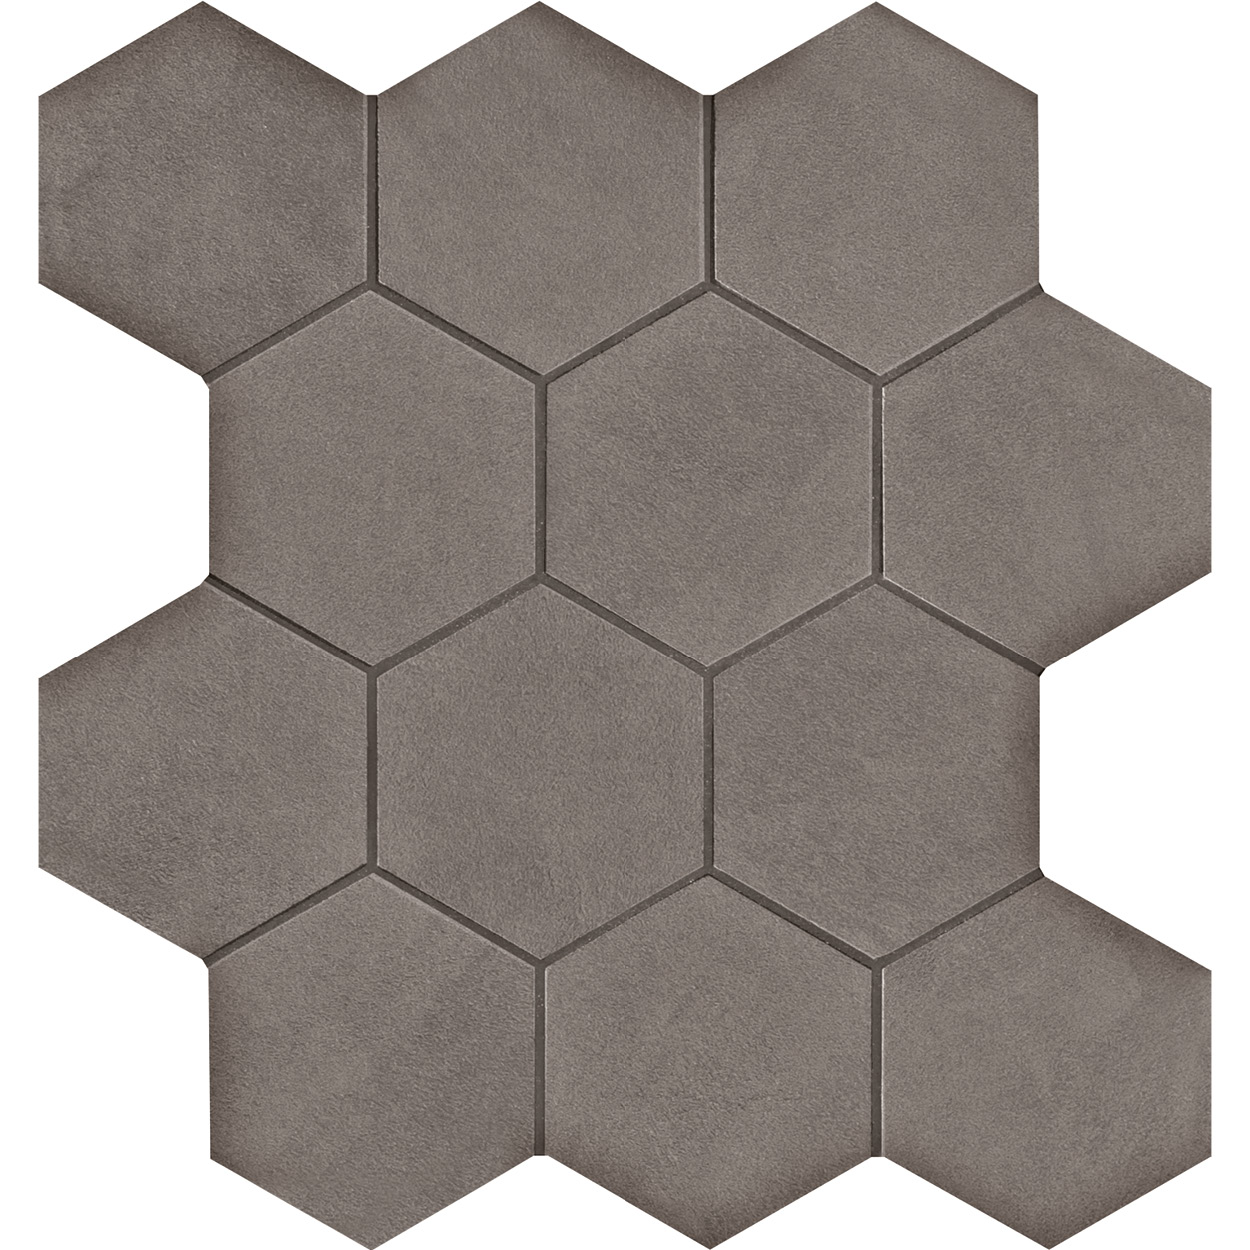 3 X 3 Seamless CL_02 hexagon